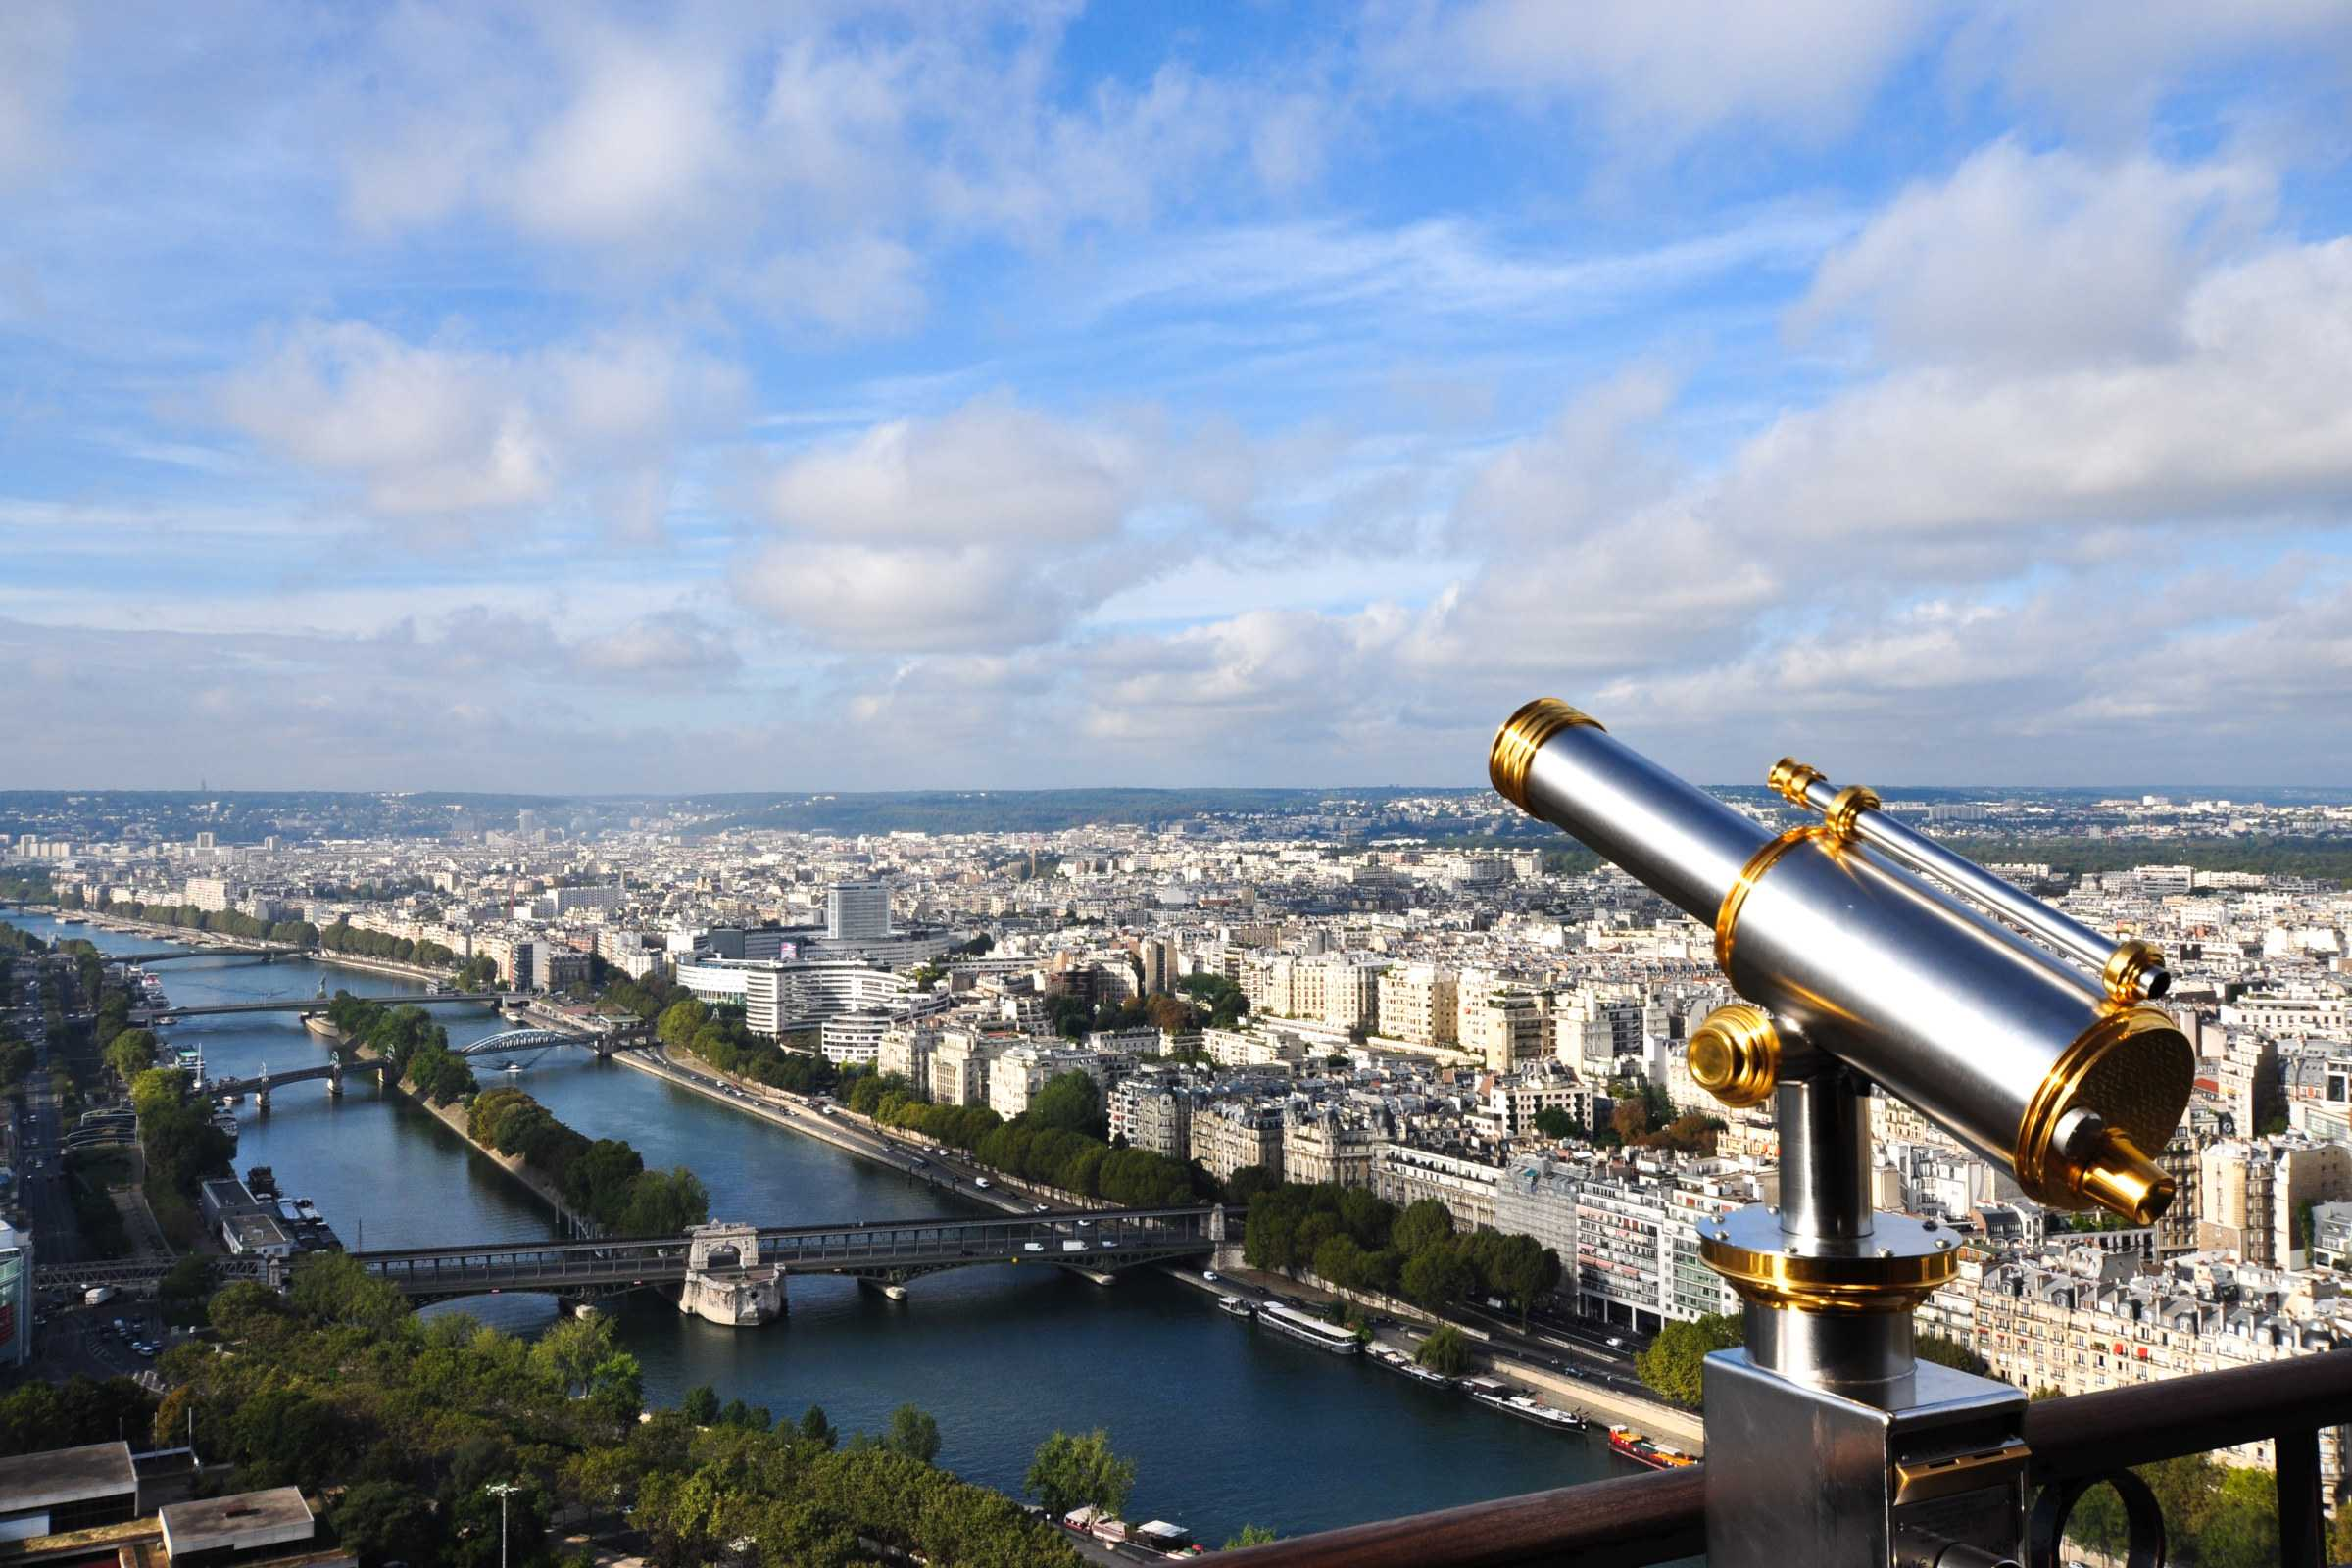 binocular attached to a balcony of eiffel metal structure